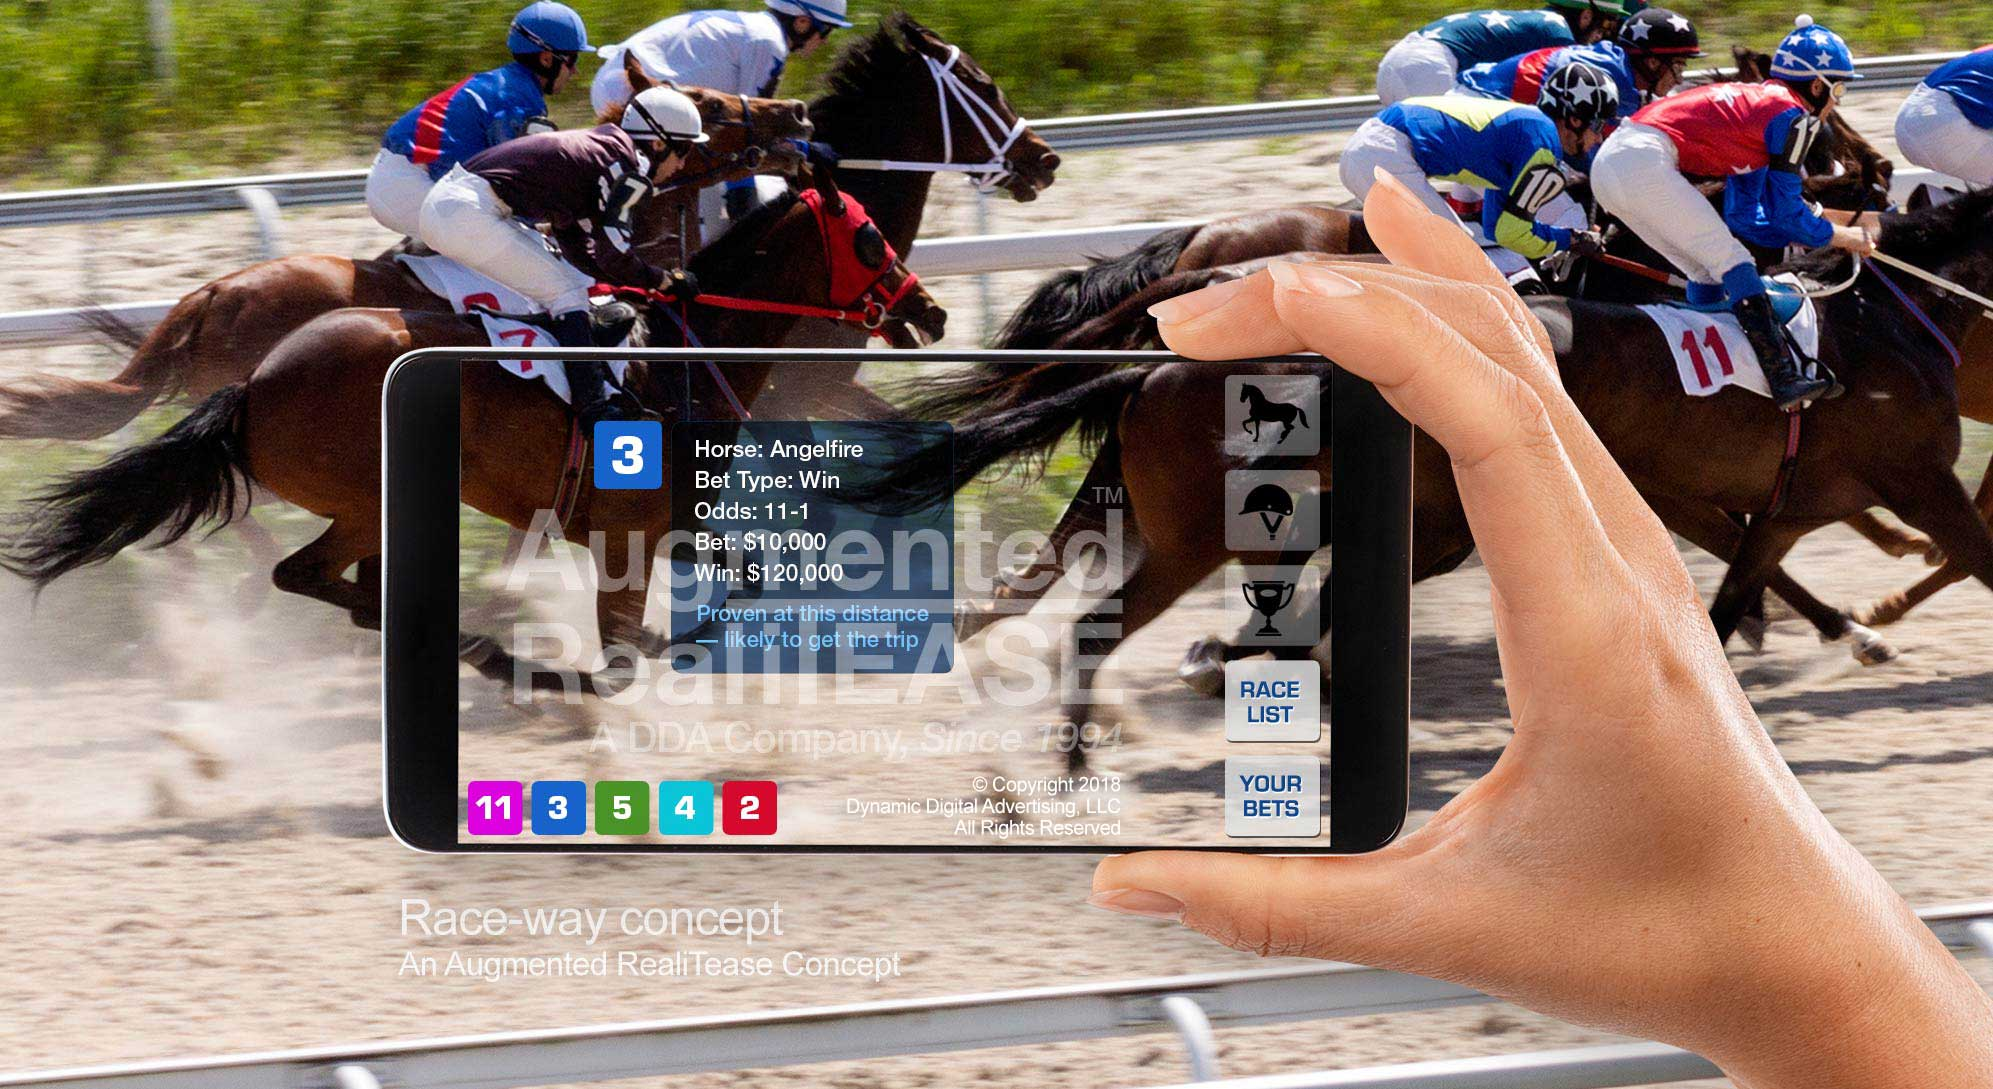 Augmented Reality Racehorse ID App - Augmented RealiTease